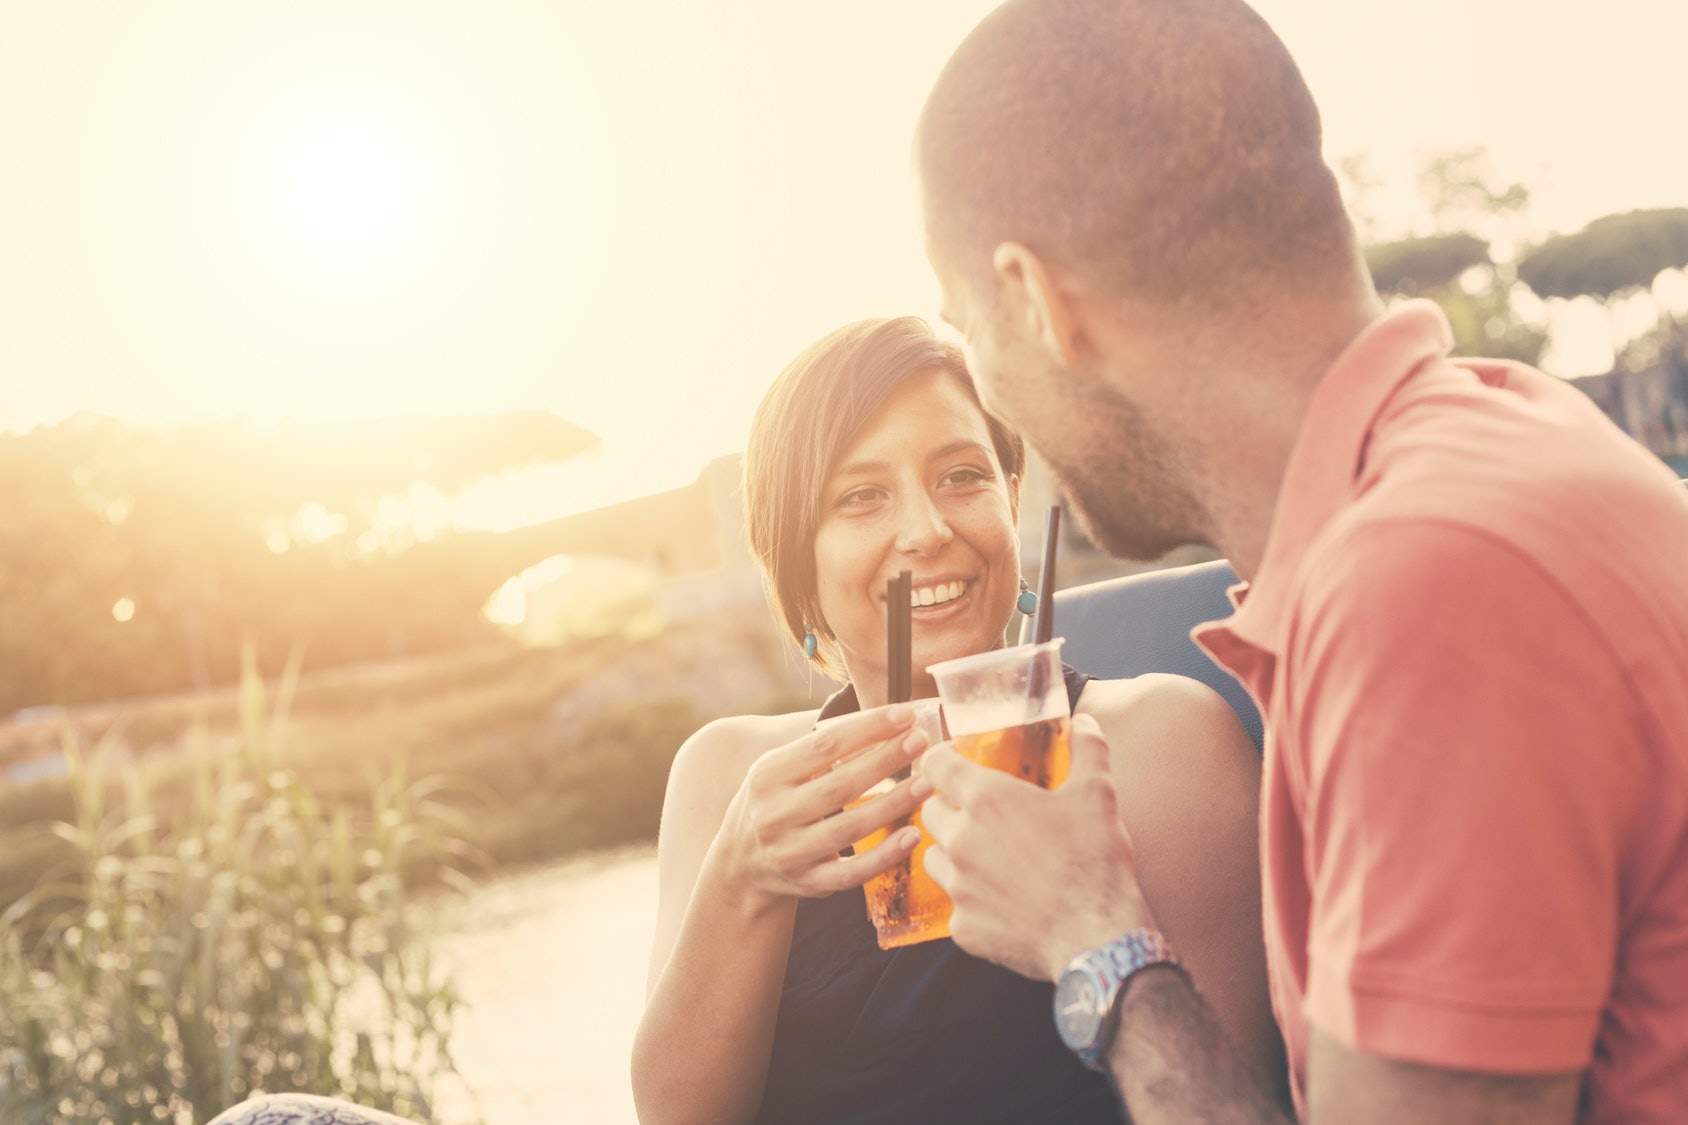 What to do on a first date after meeting online